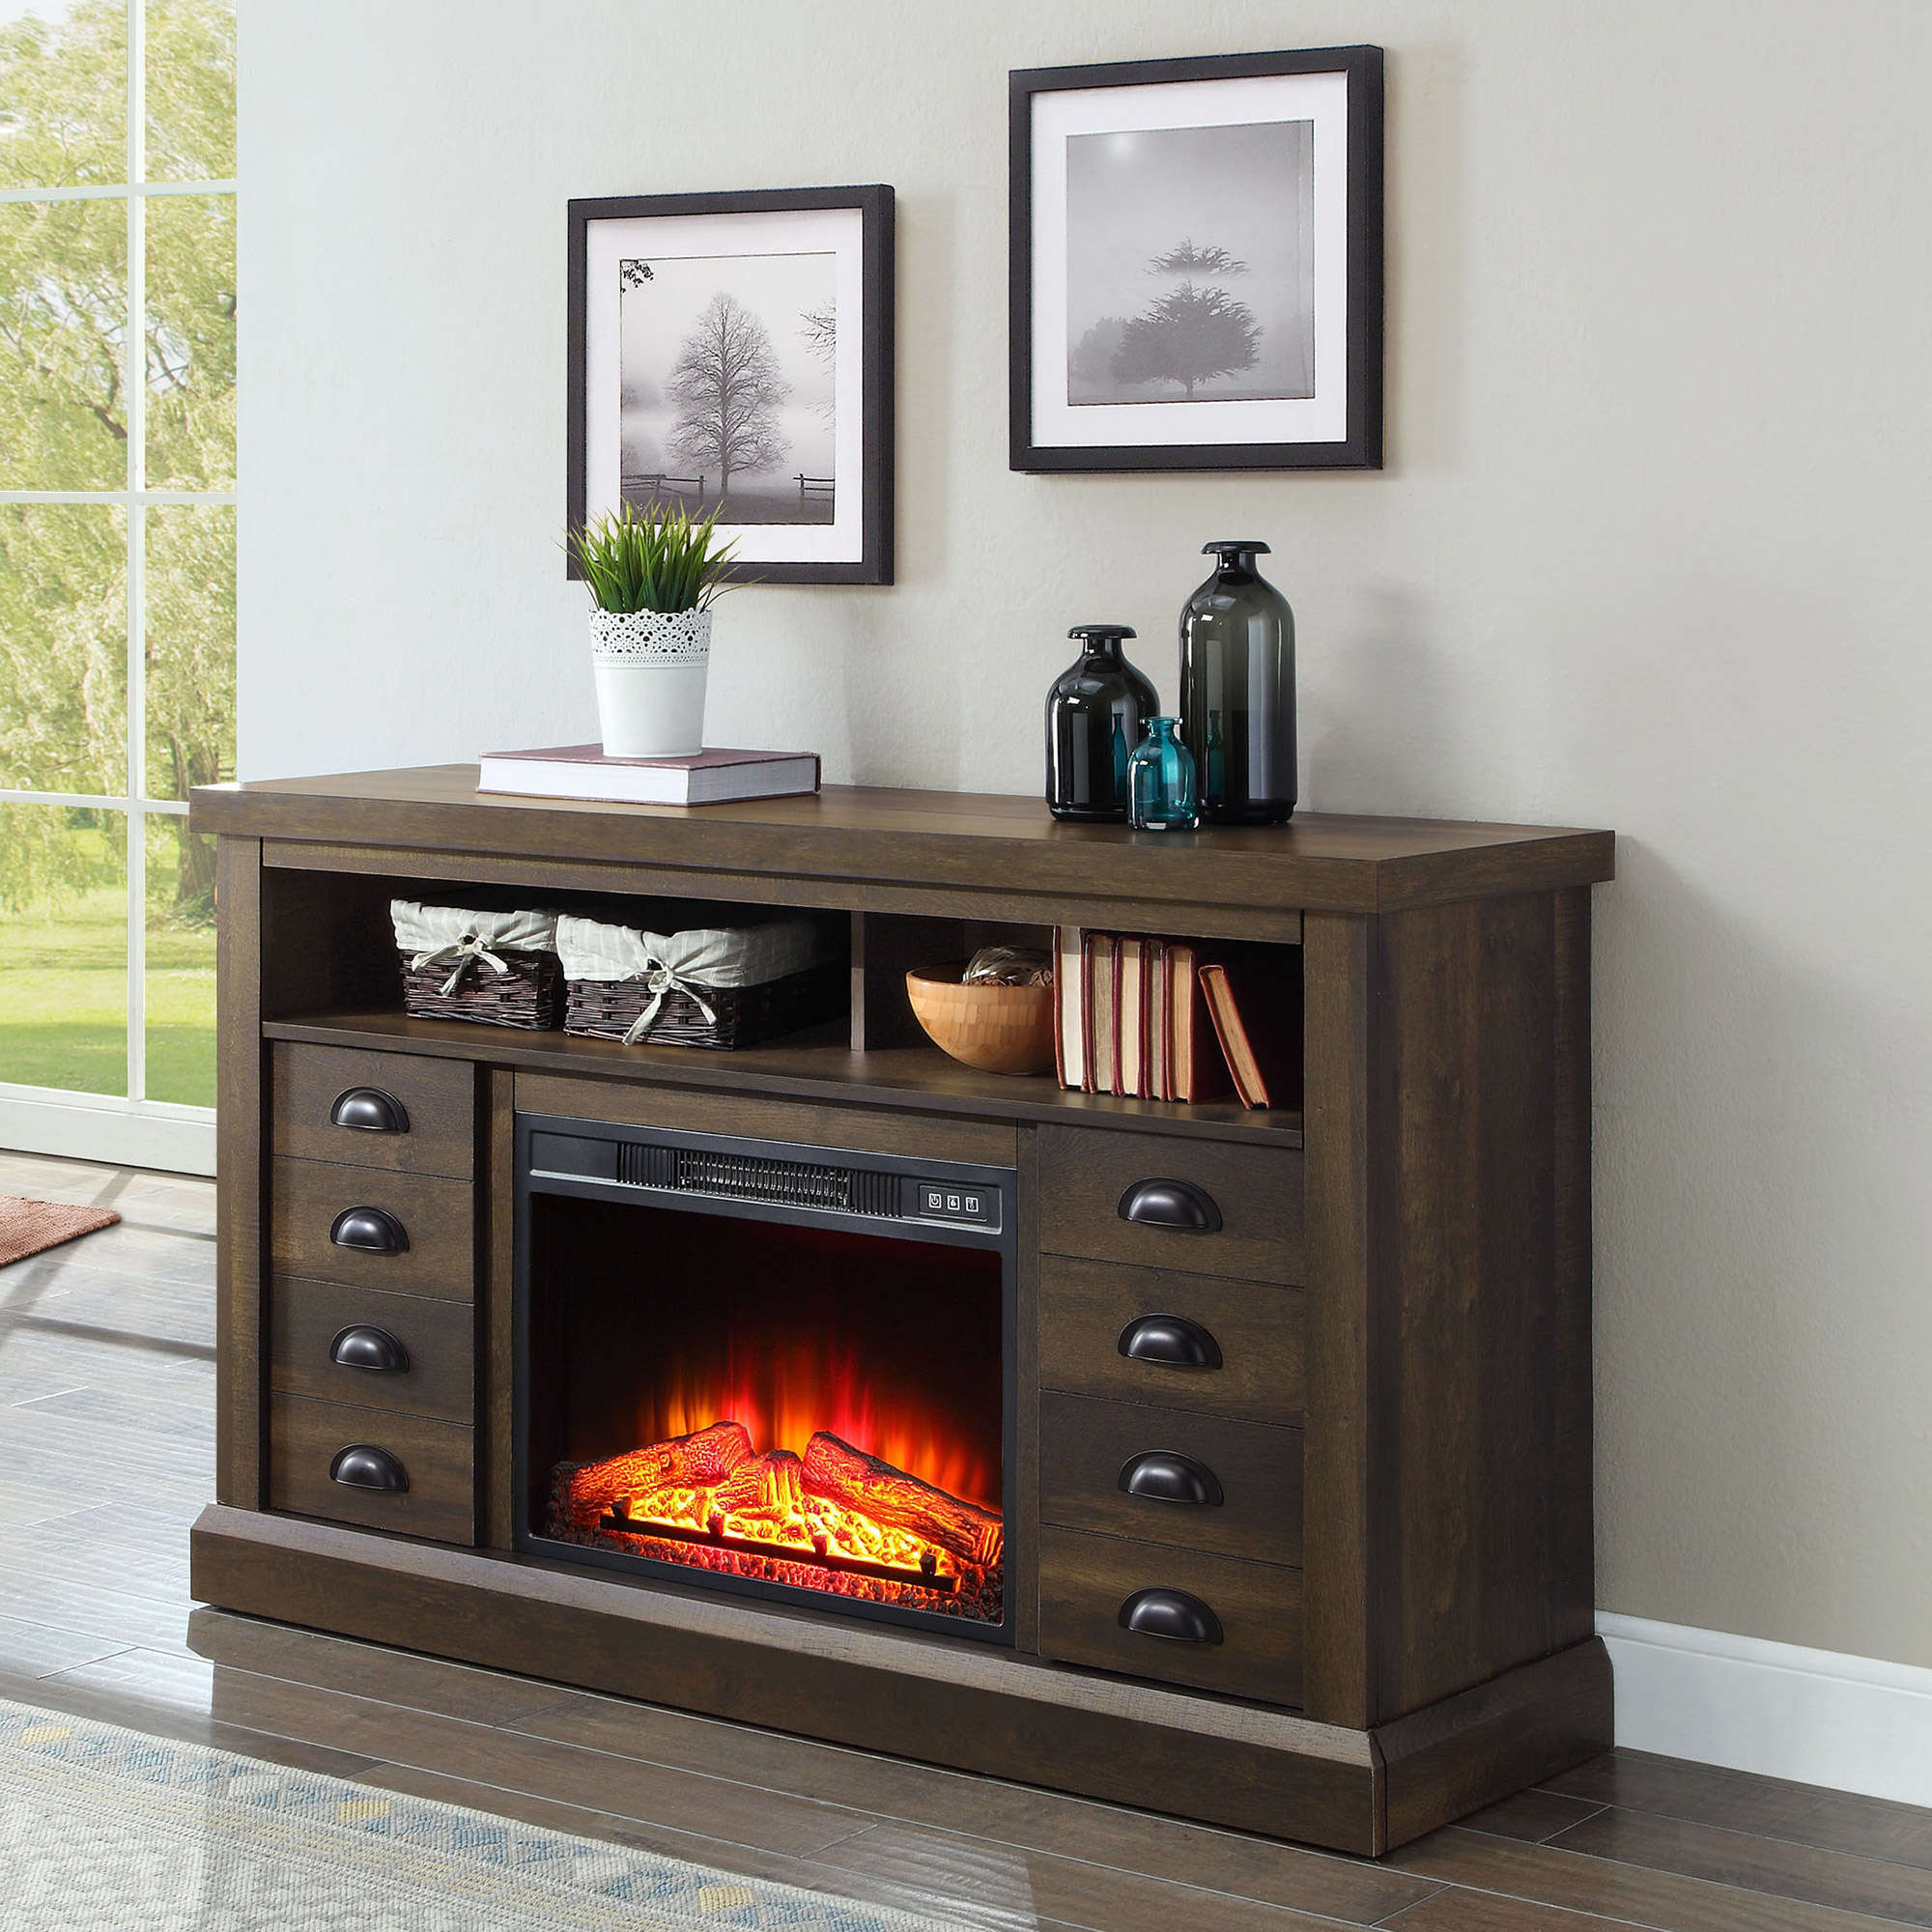 60 Inch TV Stand With Fireplace Media Console Electric Entertainment Center SALE EBay